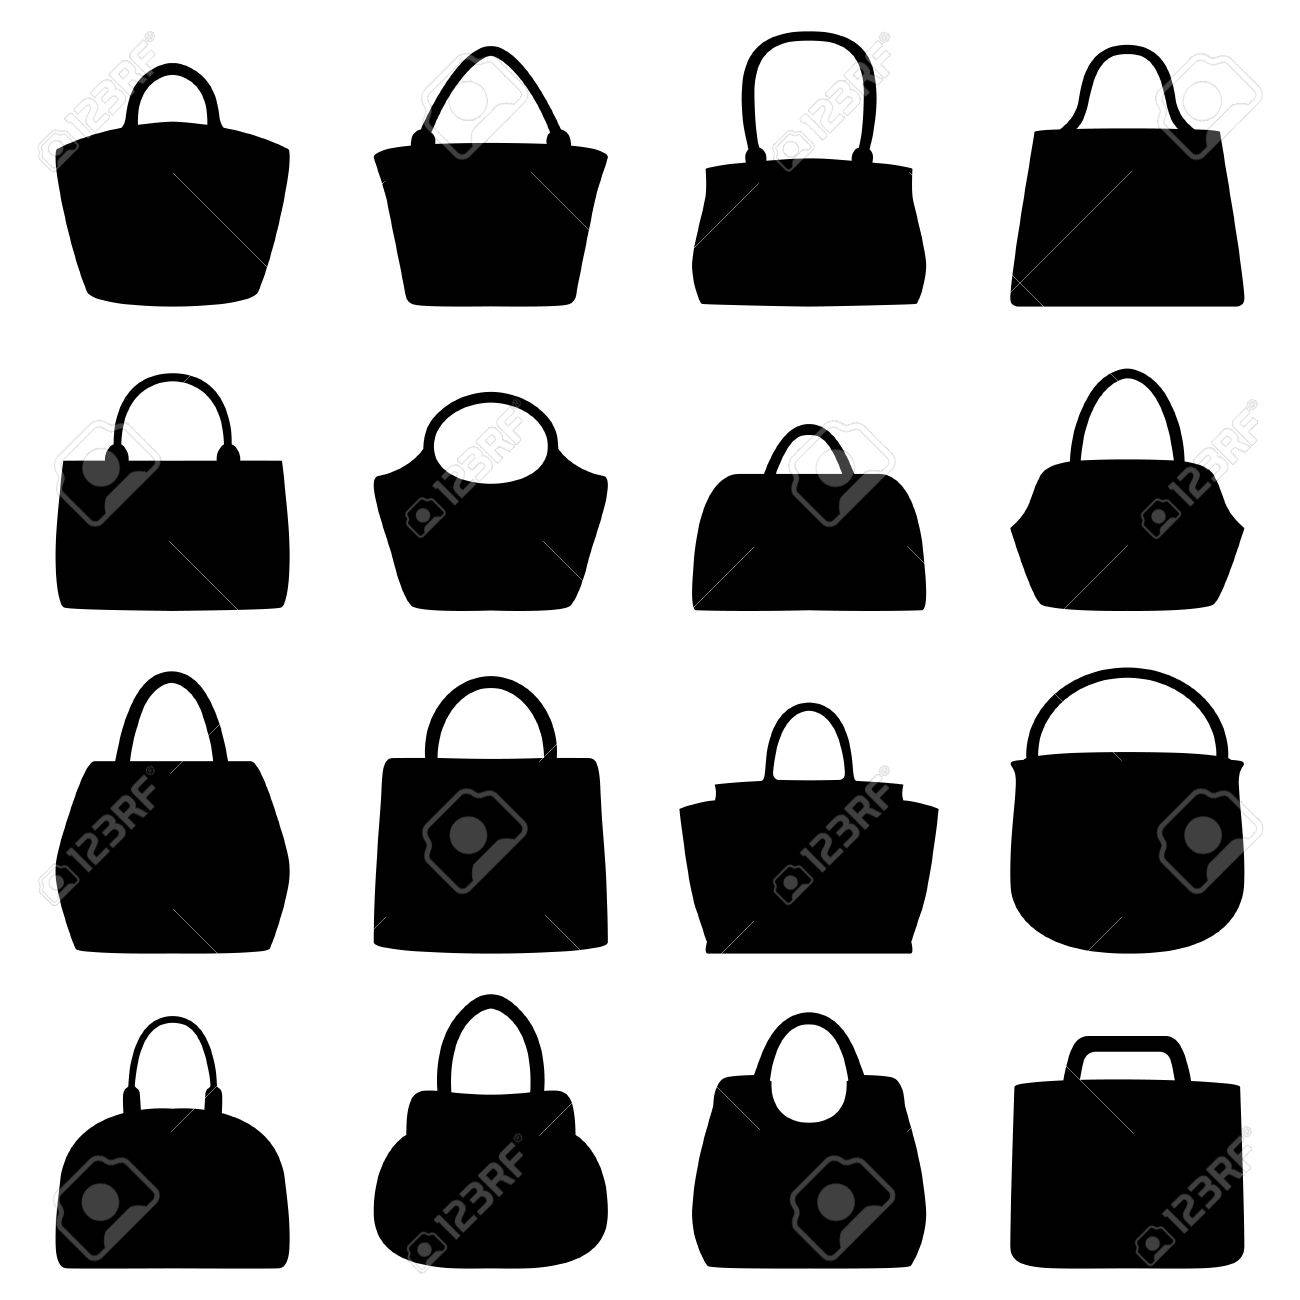 Set Of Women Bags, Vector Illustration Royalty Free Cliparts ... 9f36b996b4